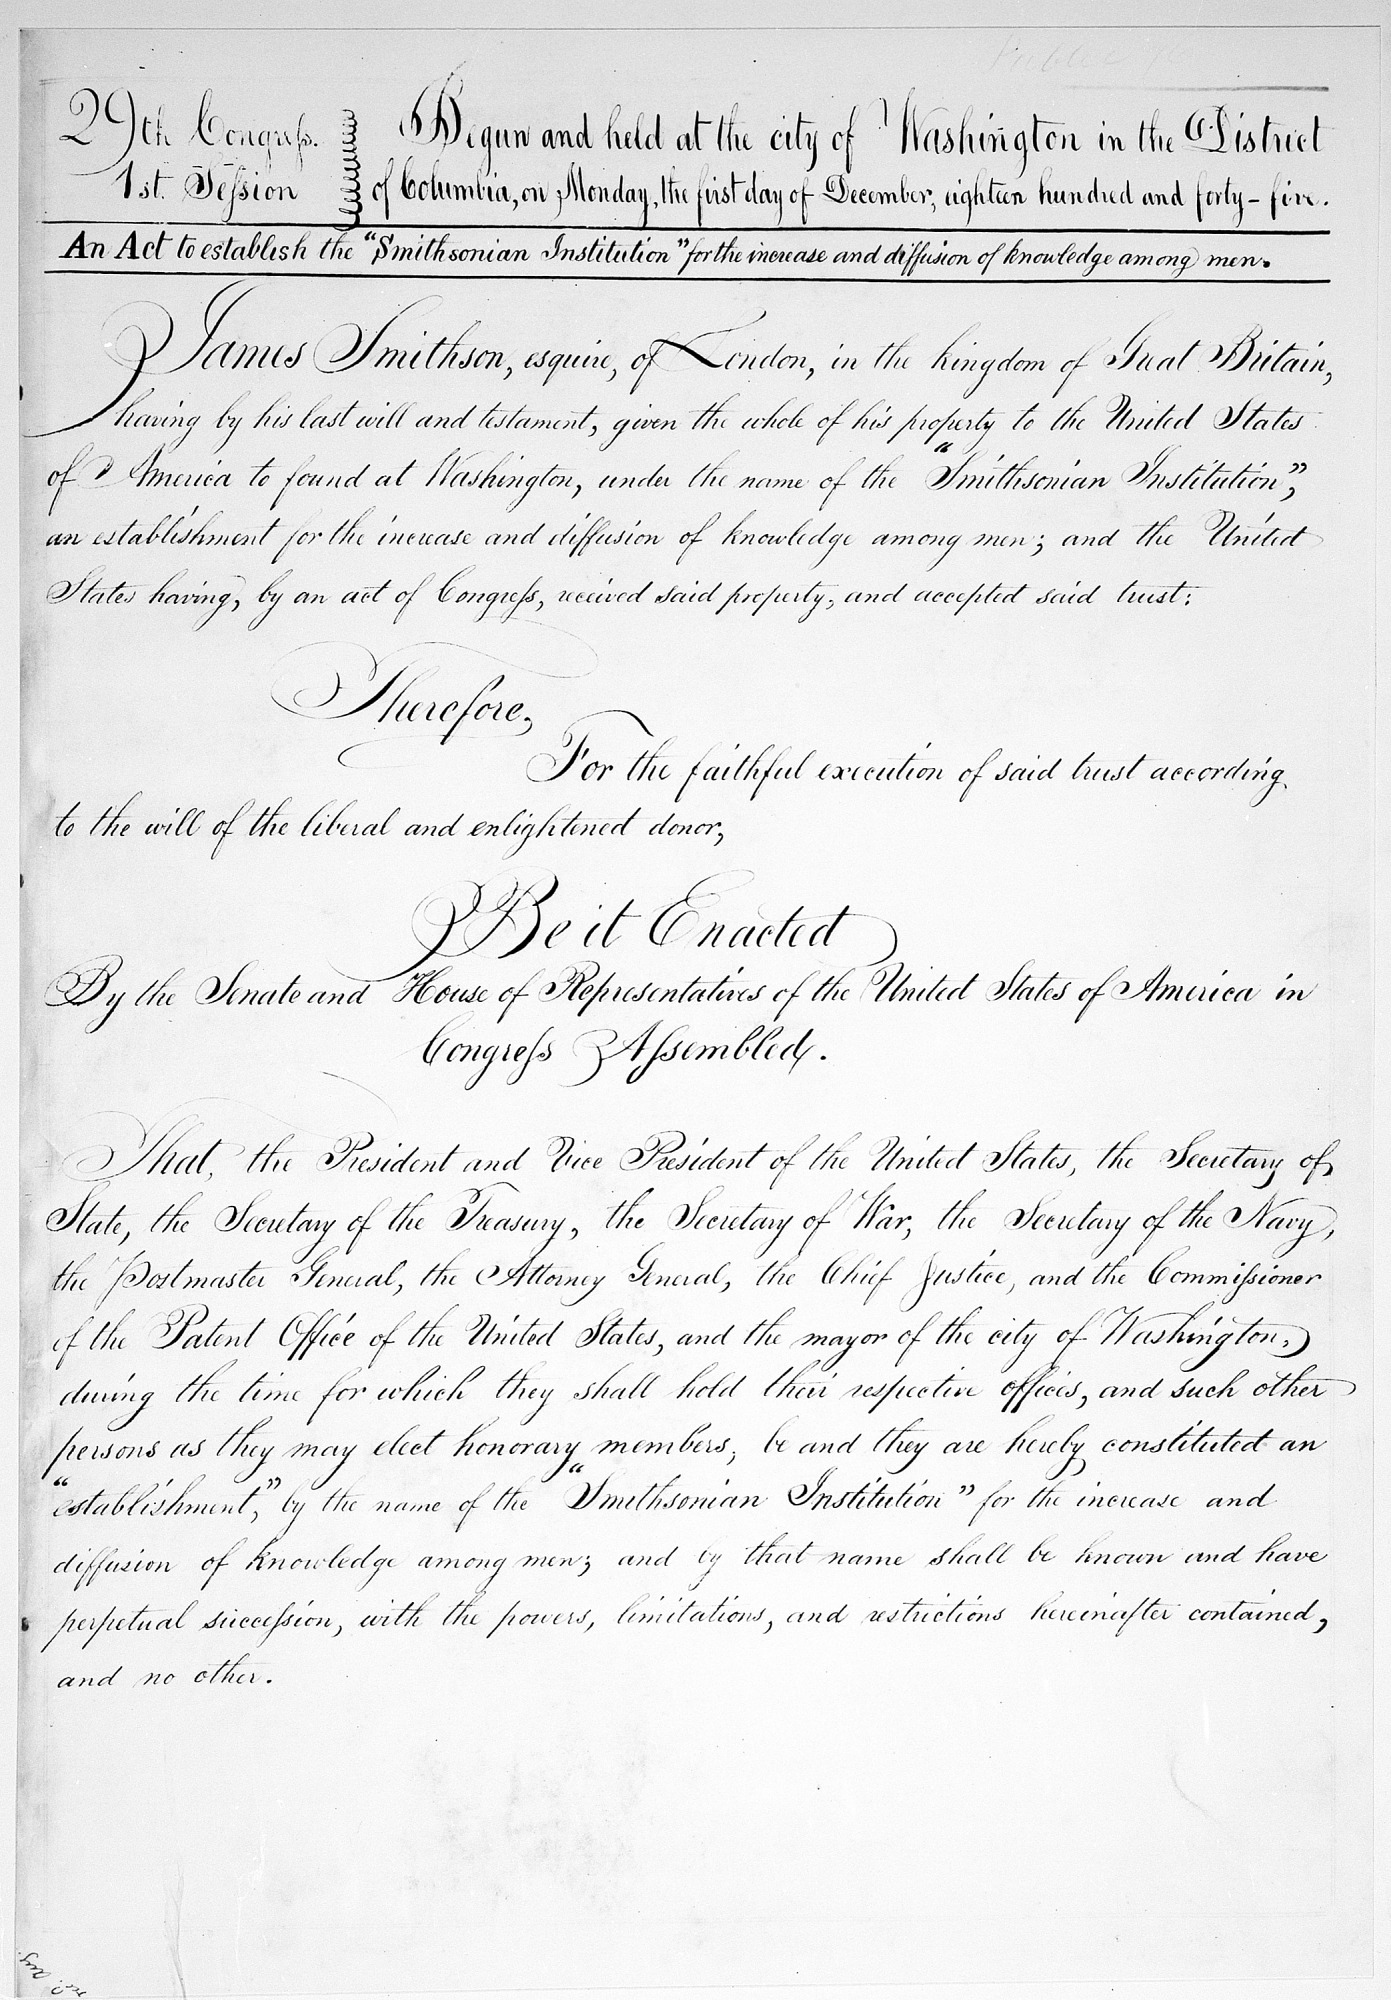 images for Passage of Act to Establish the Smithsonian Institution